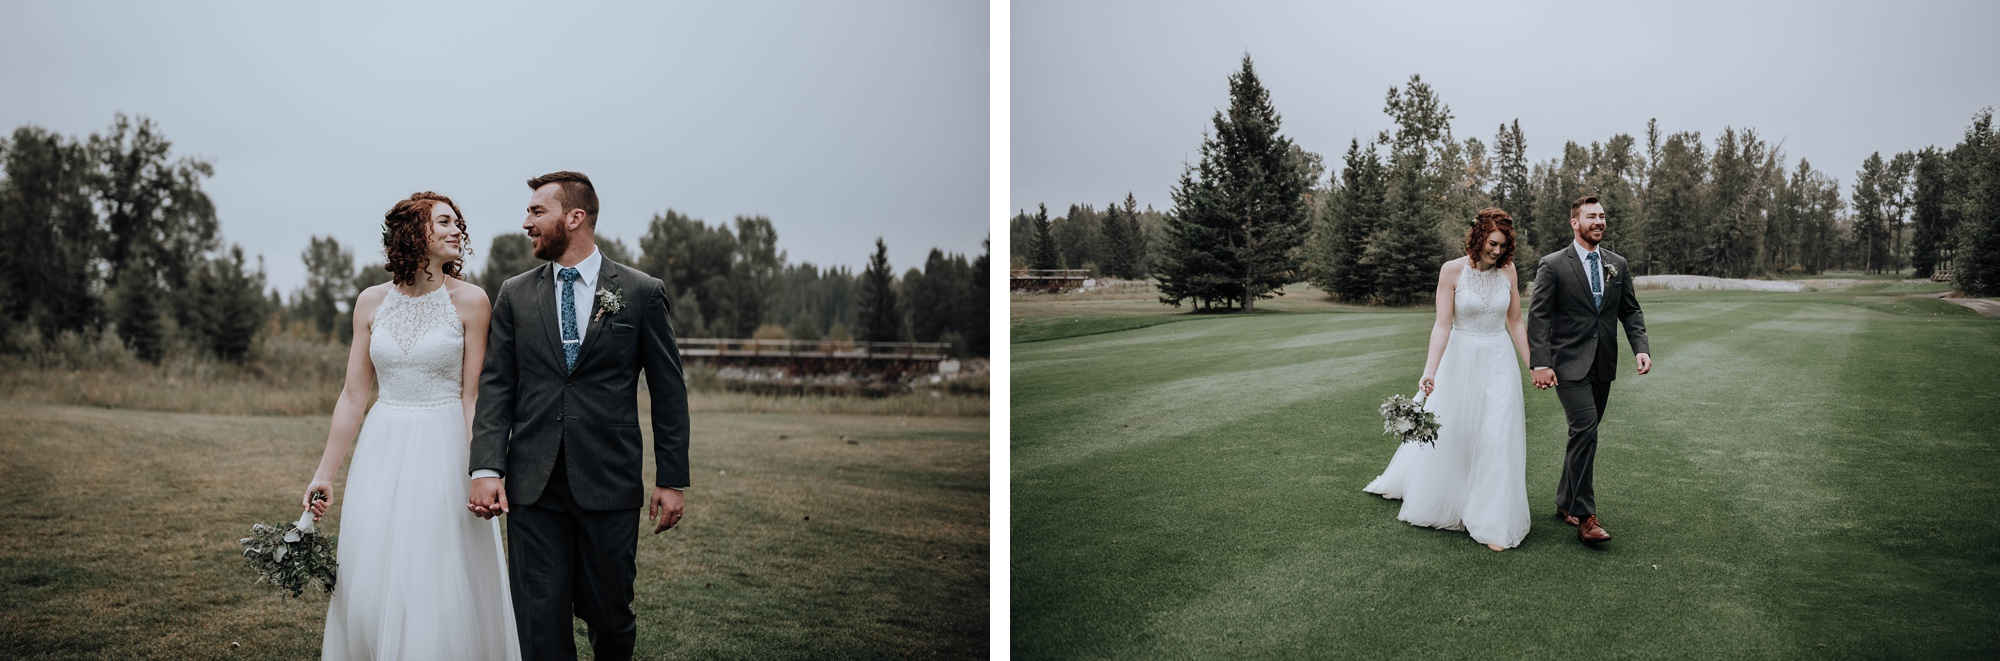 fun shots of bridal party at Calgary golf course and country club in the fall in Calgary